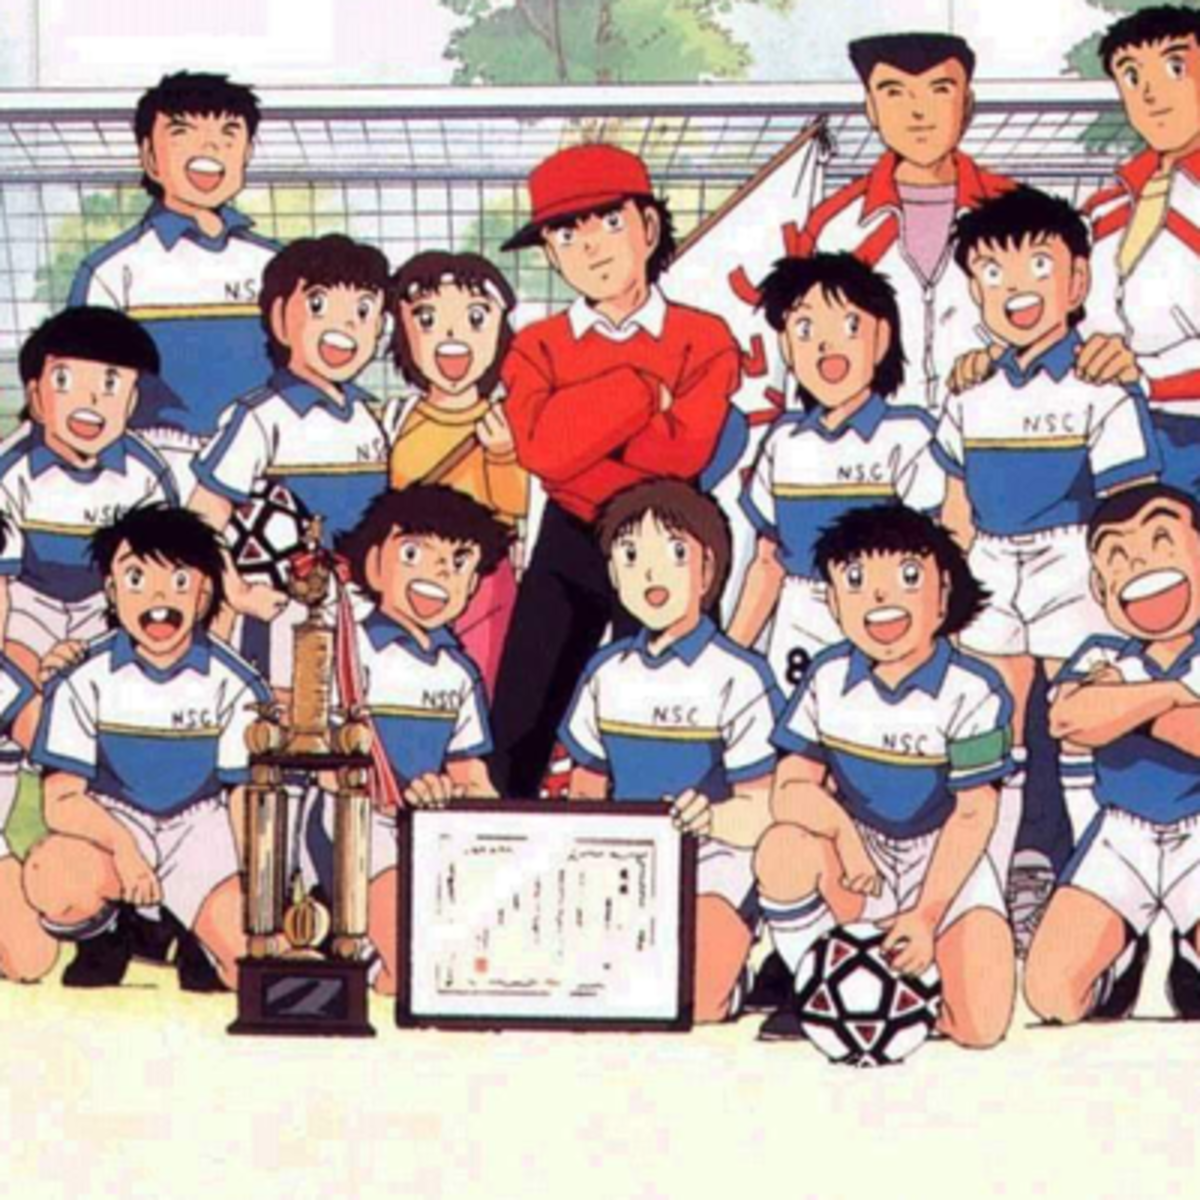 The Japanese Youth Soccer Team